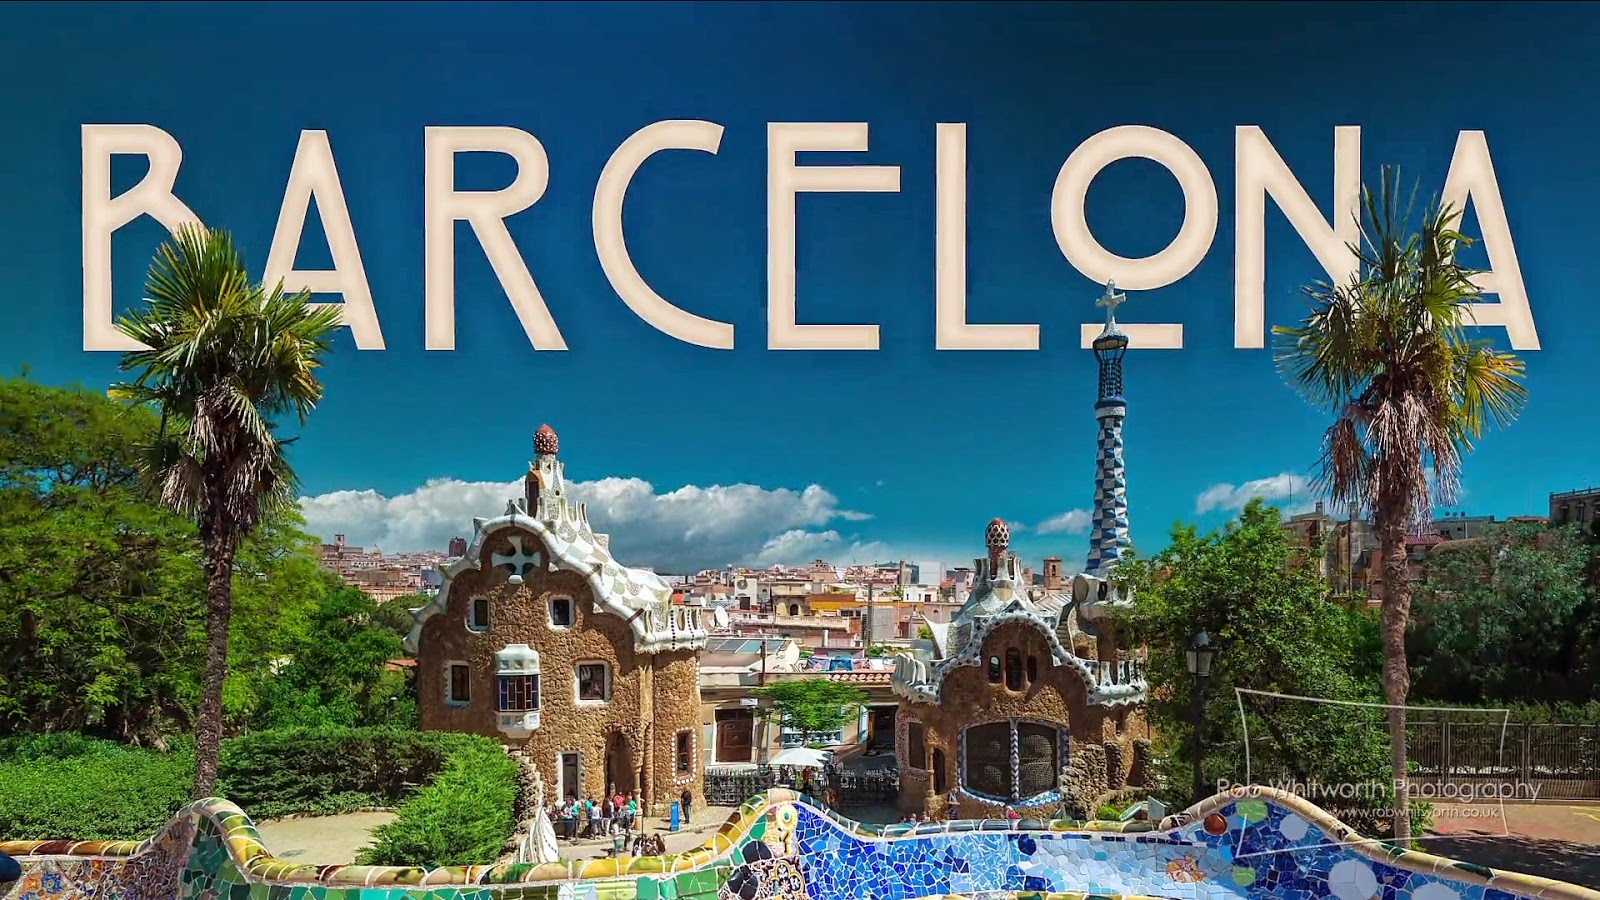 The Coolest Video Of Barcelona I Have Ever Seen, My Jaw ...